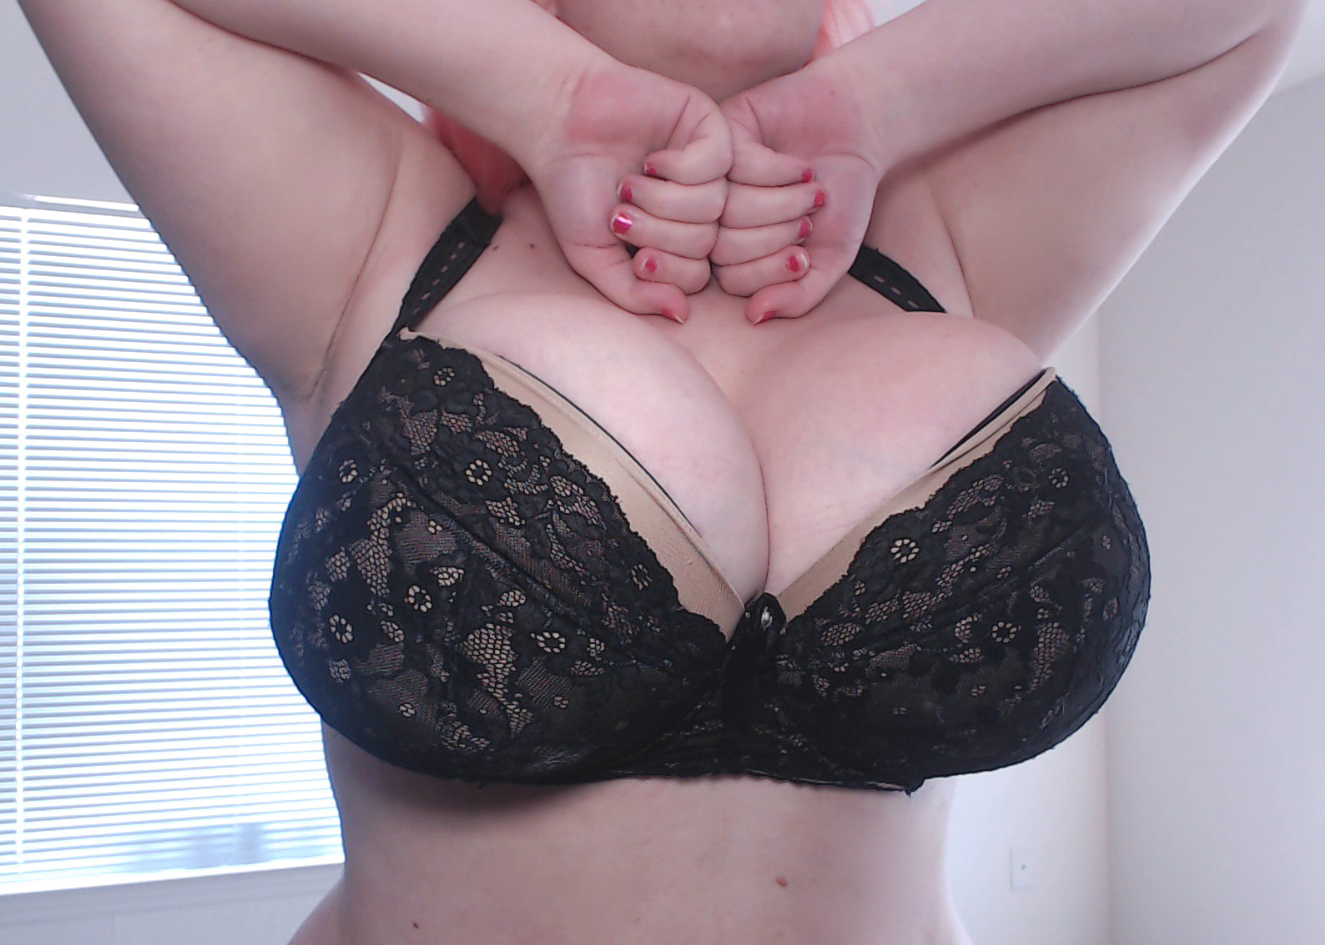 a 90K bra in a more cleavagey model also by Ewa Michalak. It's old and worn A LOT so it's not as pretty as it once was- but darn does it provide that perfect cleavage shape for me!